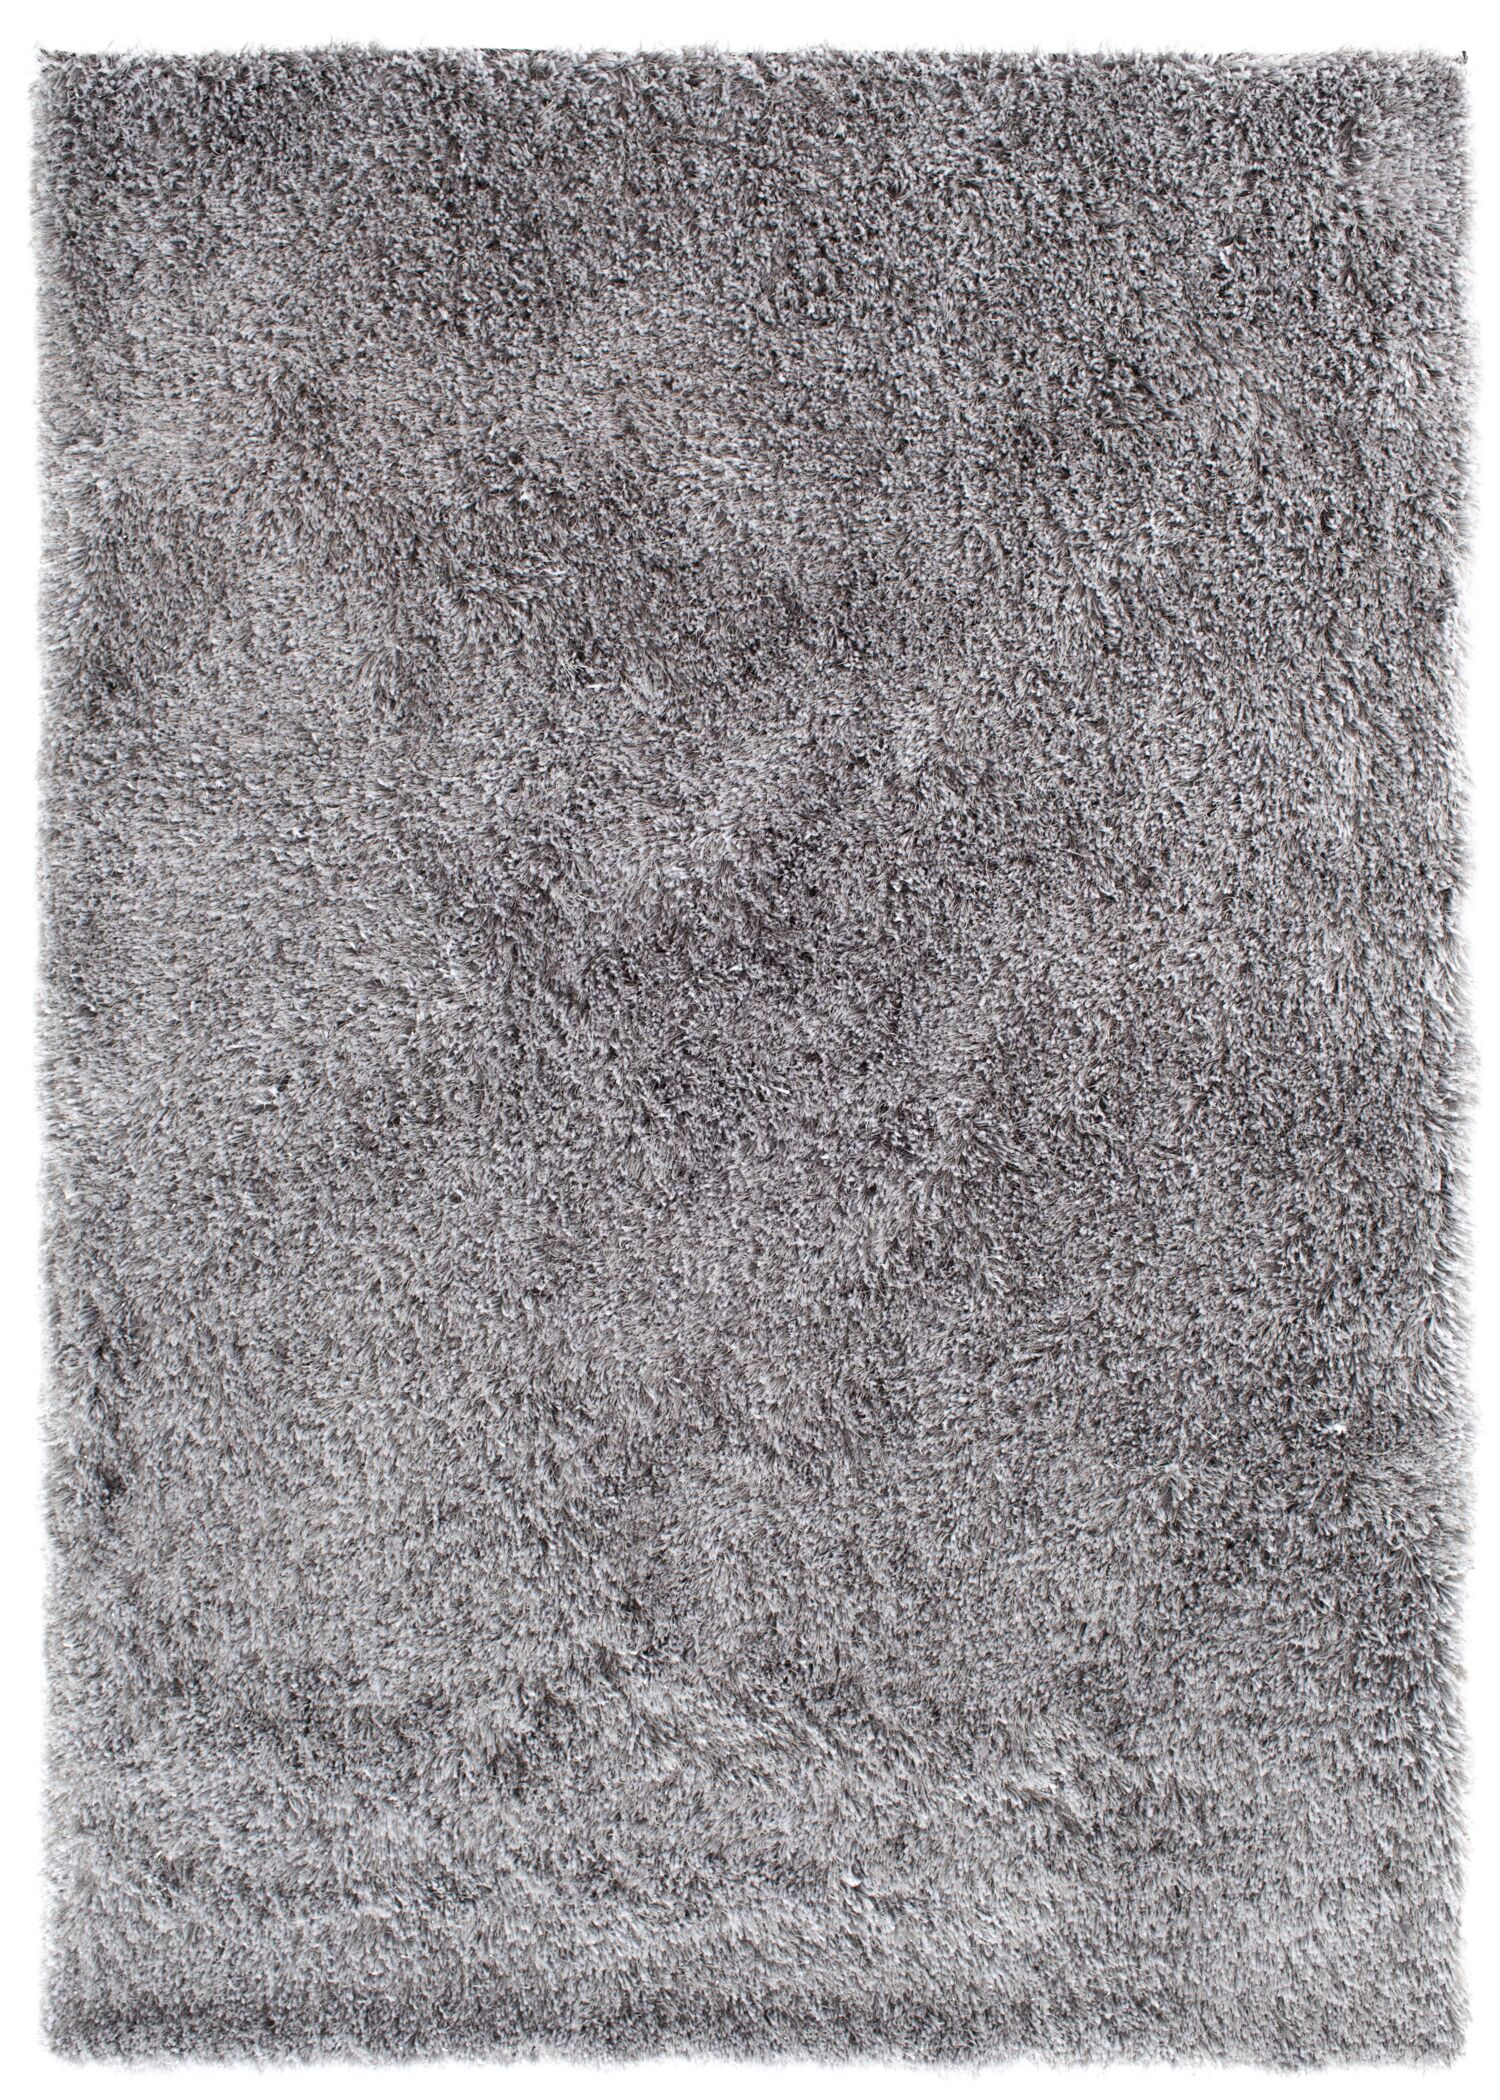 Luster Shag Silver Area Rug Rug Size: Rectangle 7'6